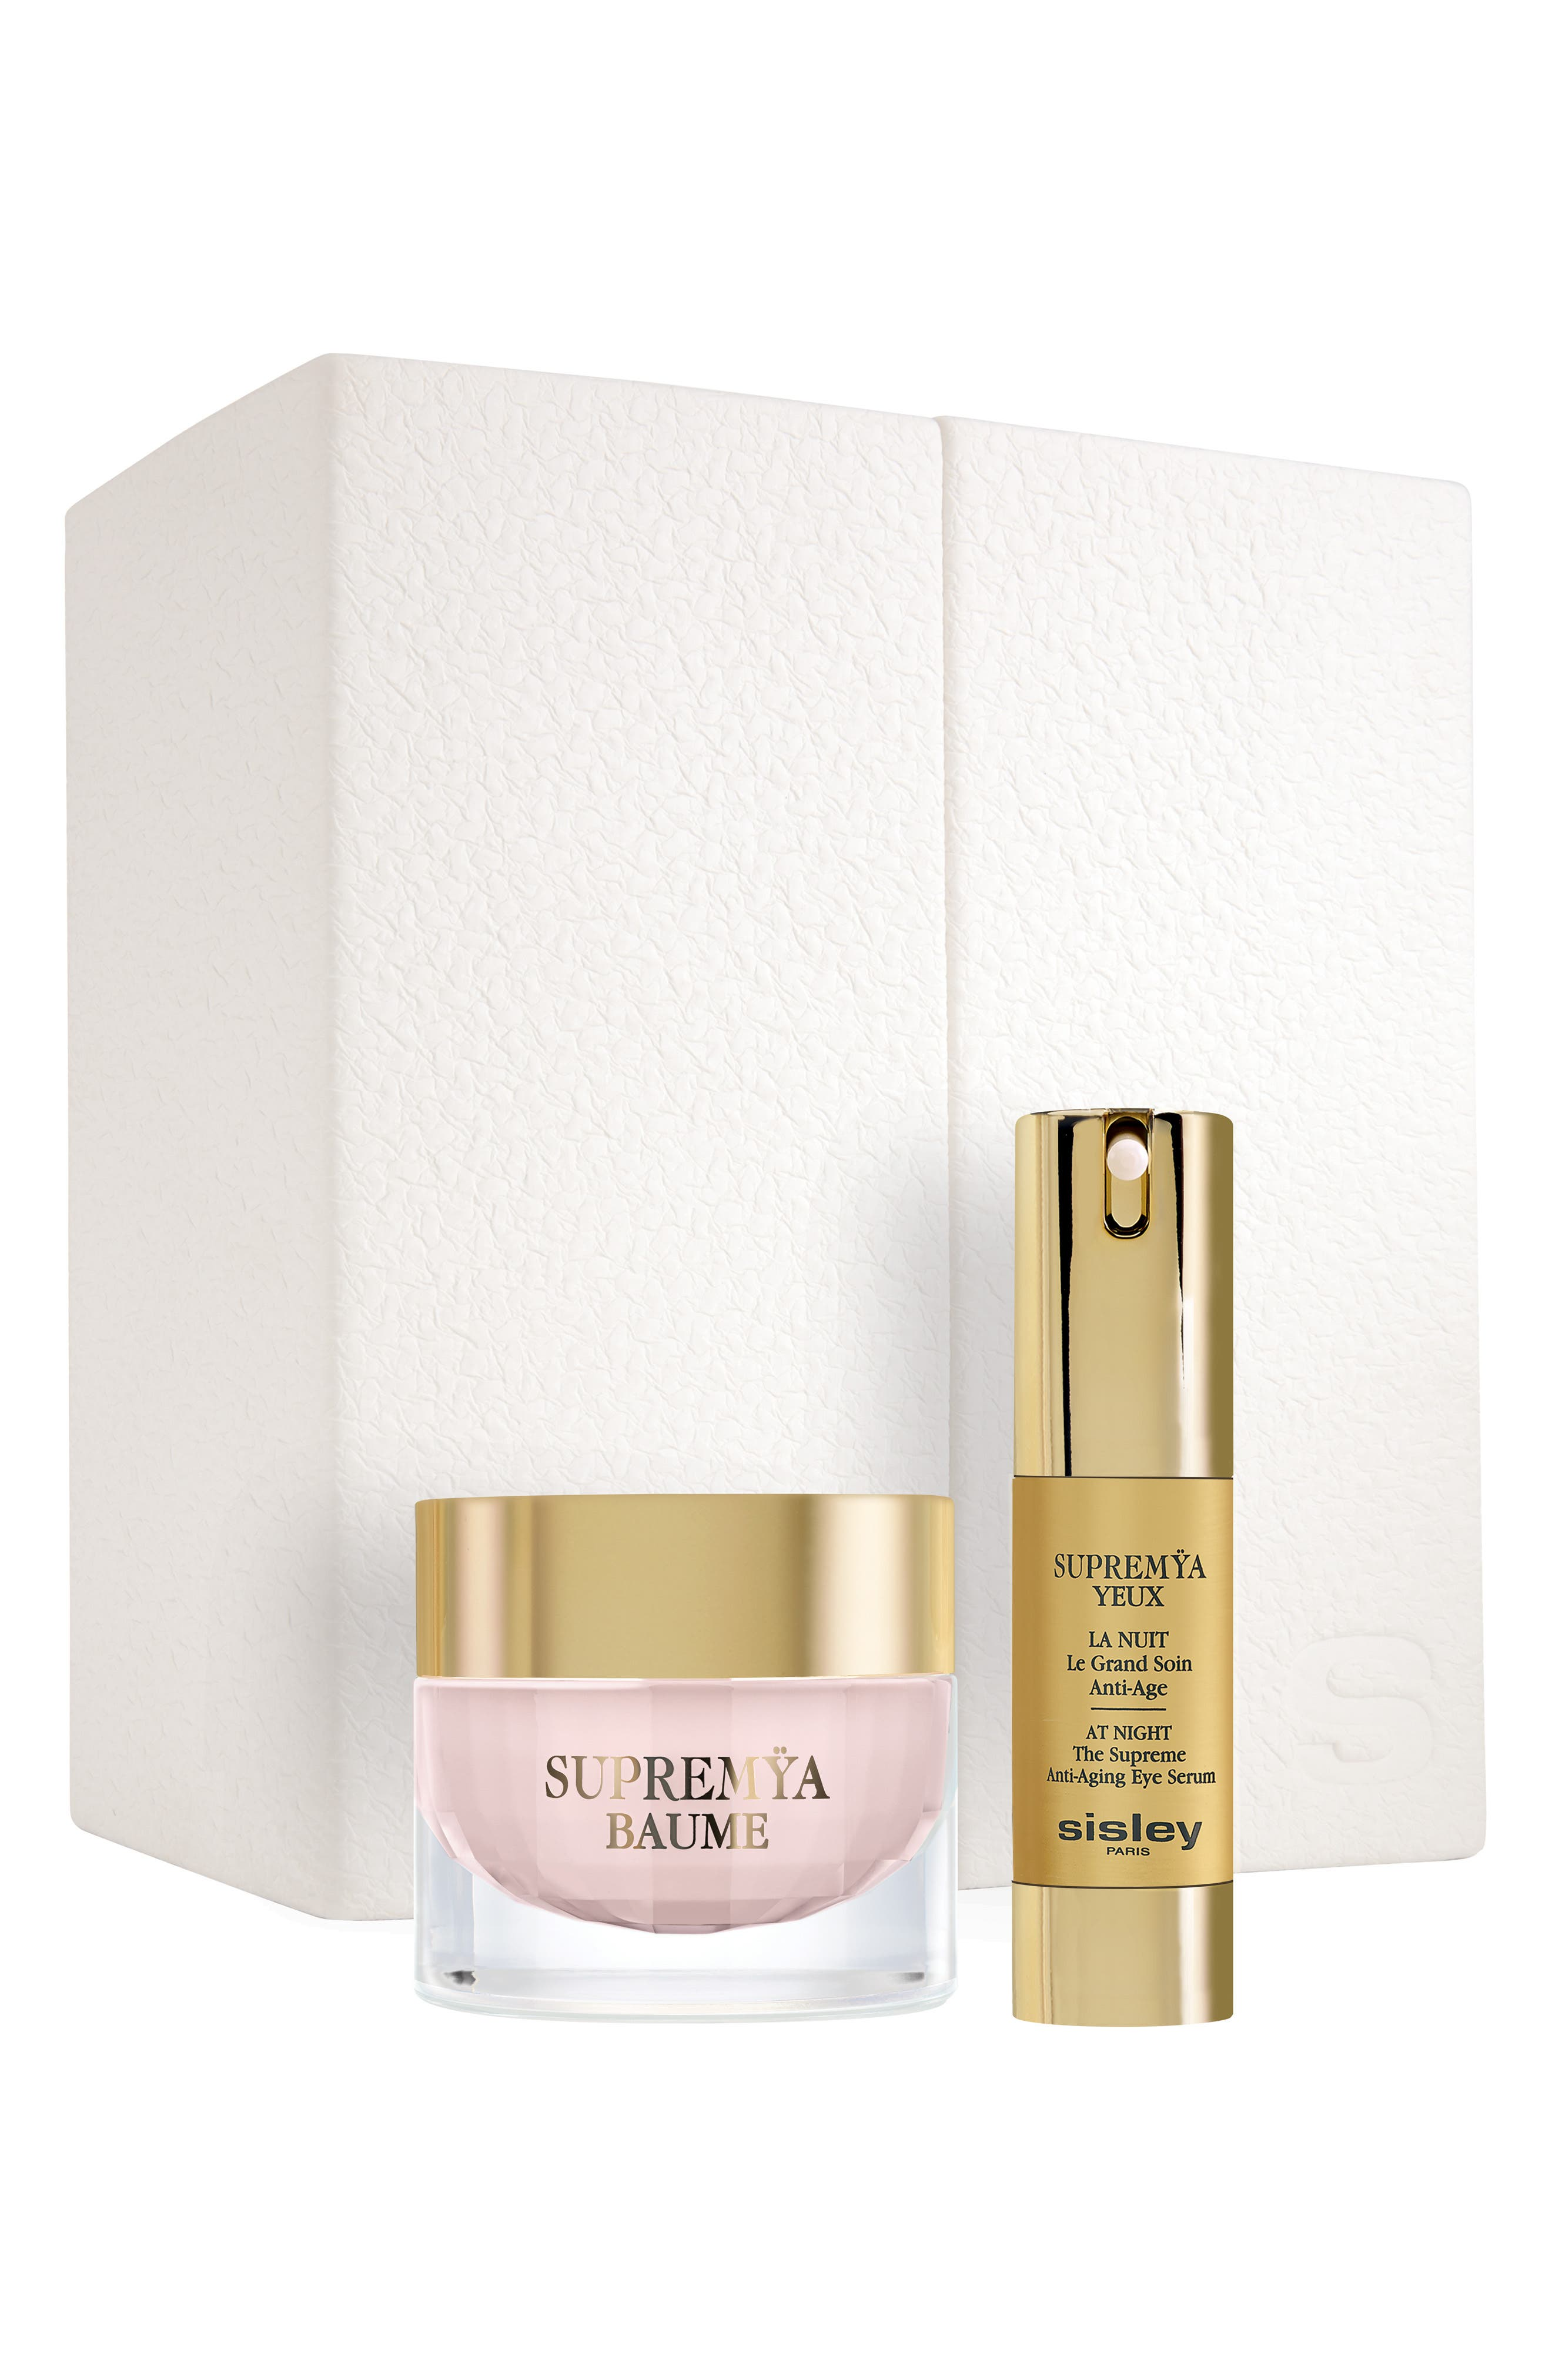 What it is: A deluxe skin care set featuring full sizes of Supremya Baume At Night and Supremya Eyes at Night, in an elegant box. Set includes:- Full-size Supremya Baume At Night Supreme Anti-Aging Cream (1.6 oz.): a supreme nighttime anti-aging product that addresses past skin damage to visibly rejuvenate the skin, featuring a deliciously smoothing, easily applied, rich and fine cream texture- Full-size Supremya Eyes At Night Supreme Anti-Aging